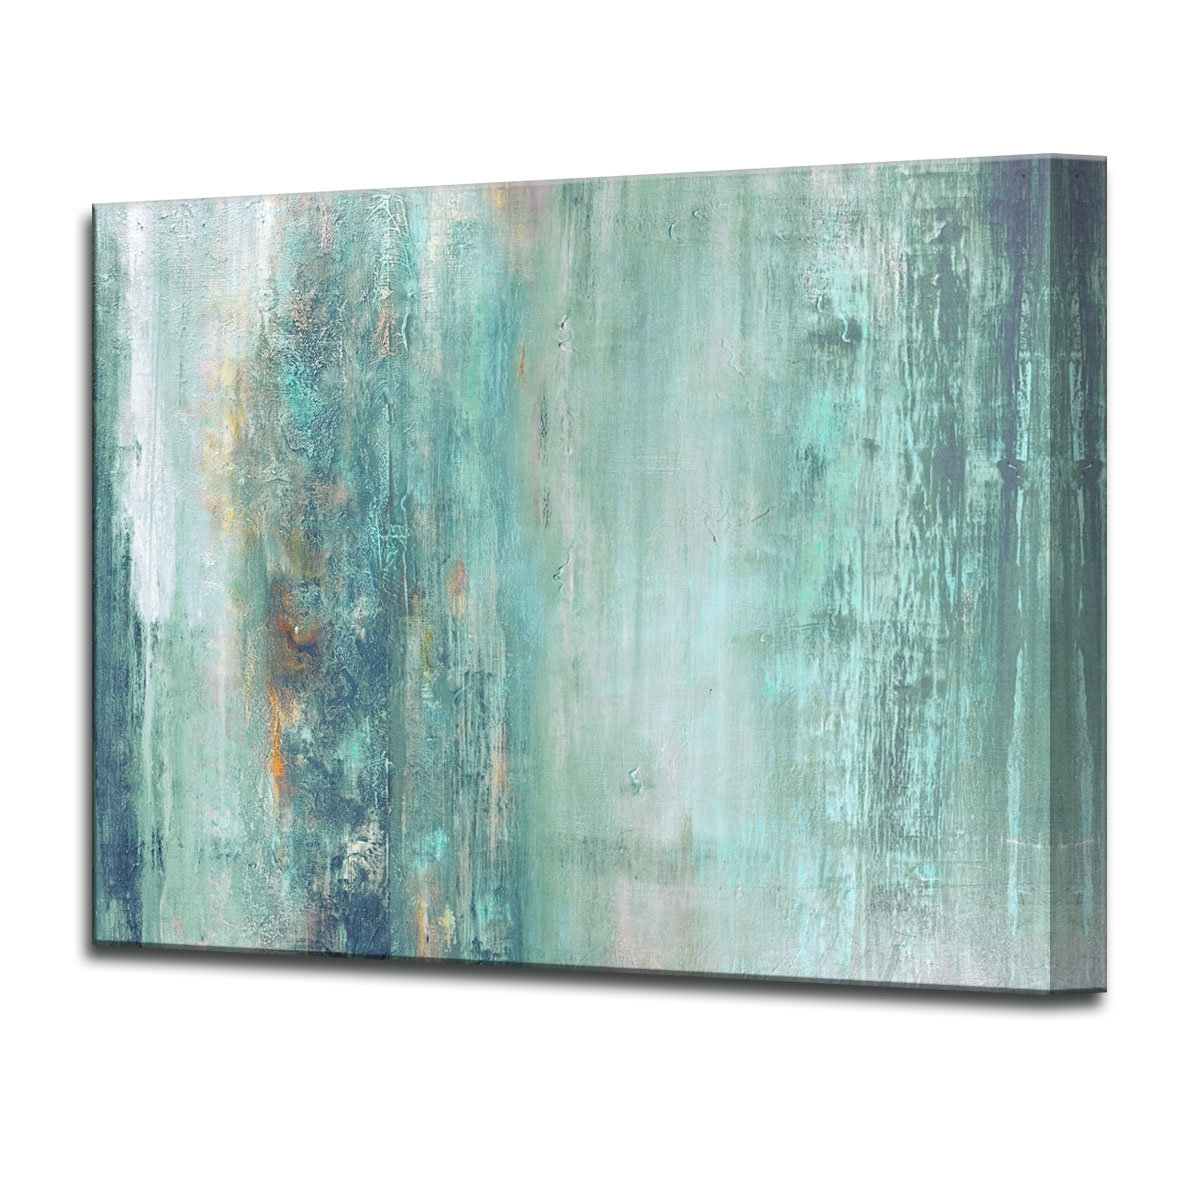 Current Wall Art Teal Colour Within Blue Wall Art You'll Love (View 1 of 15)